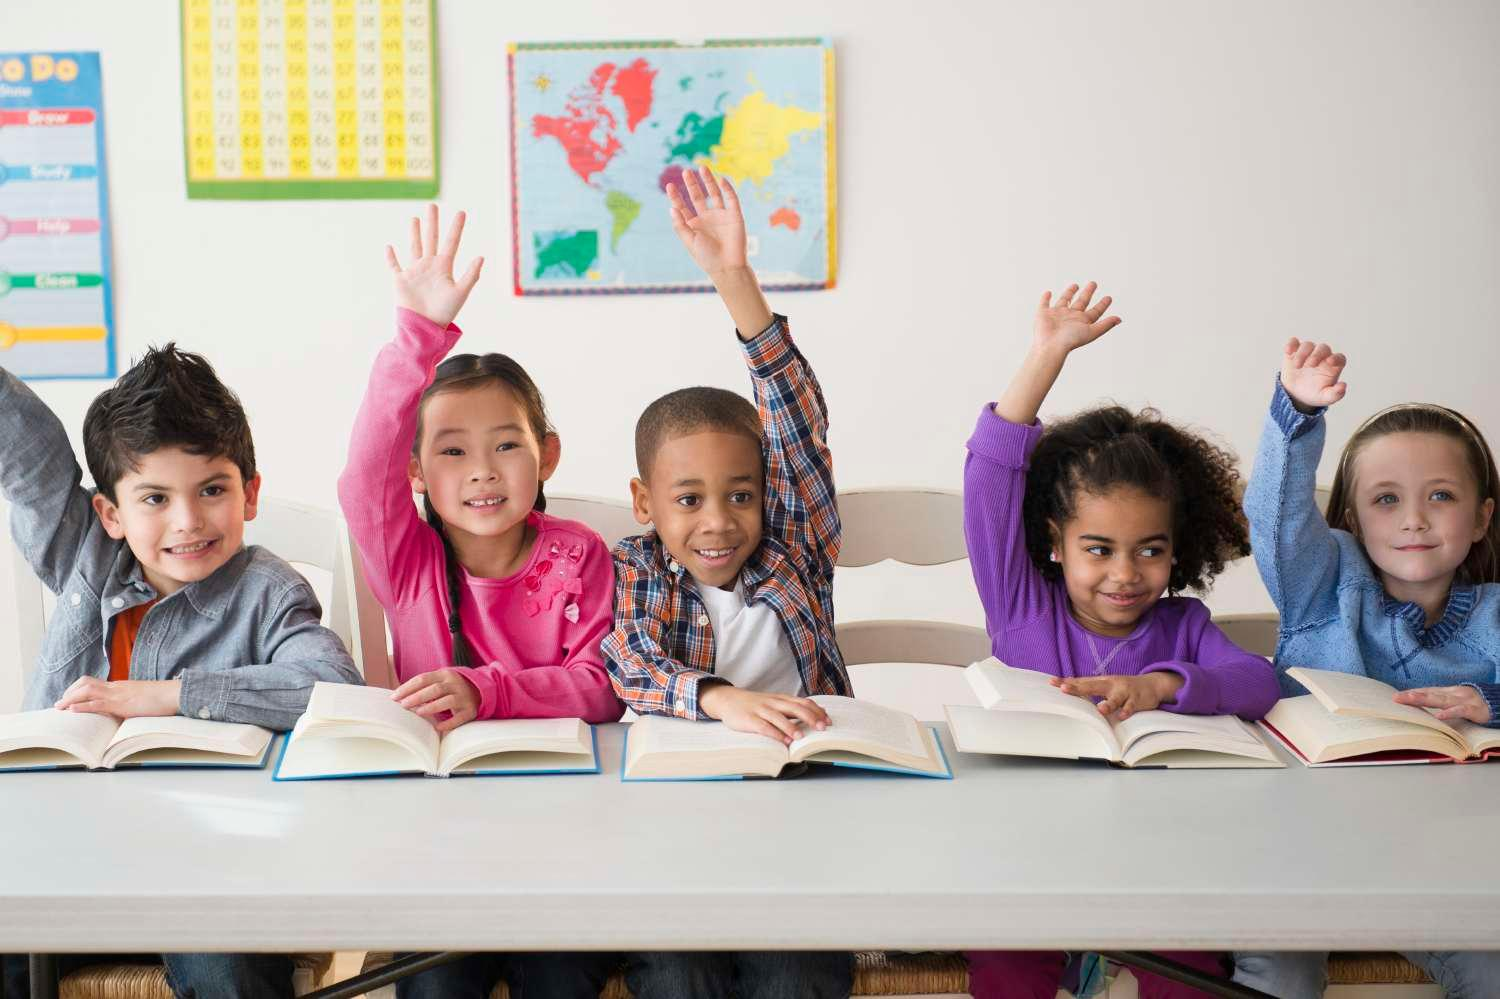 Young students in classroom with books raising hands